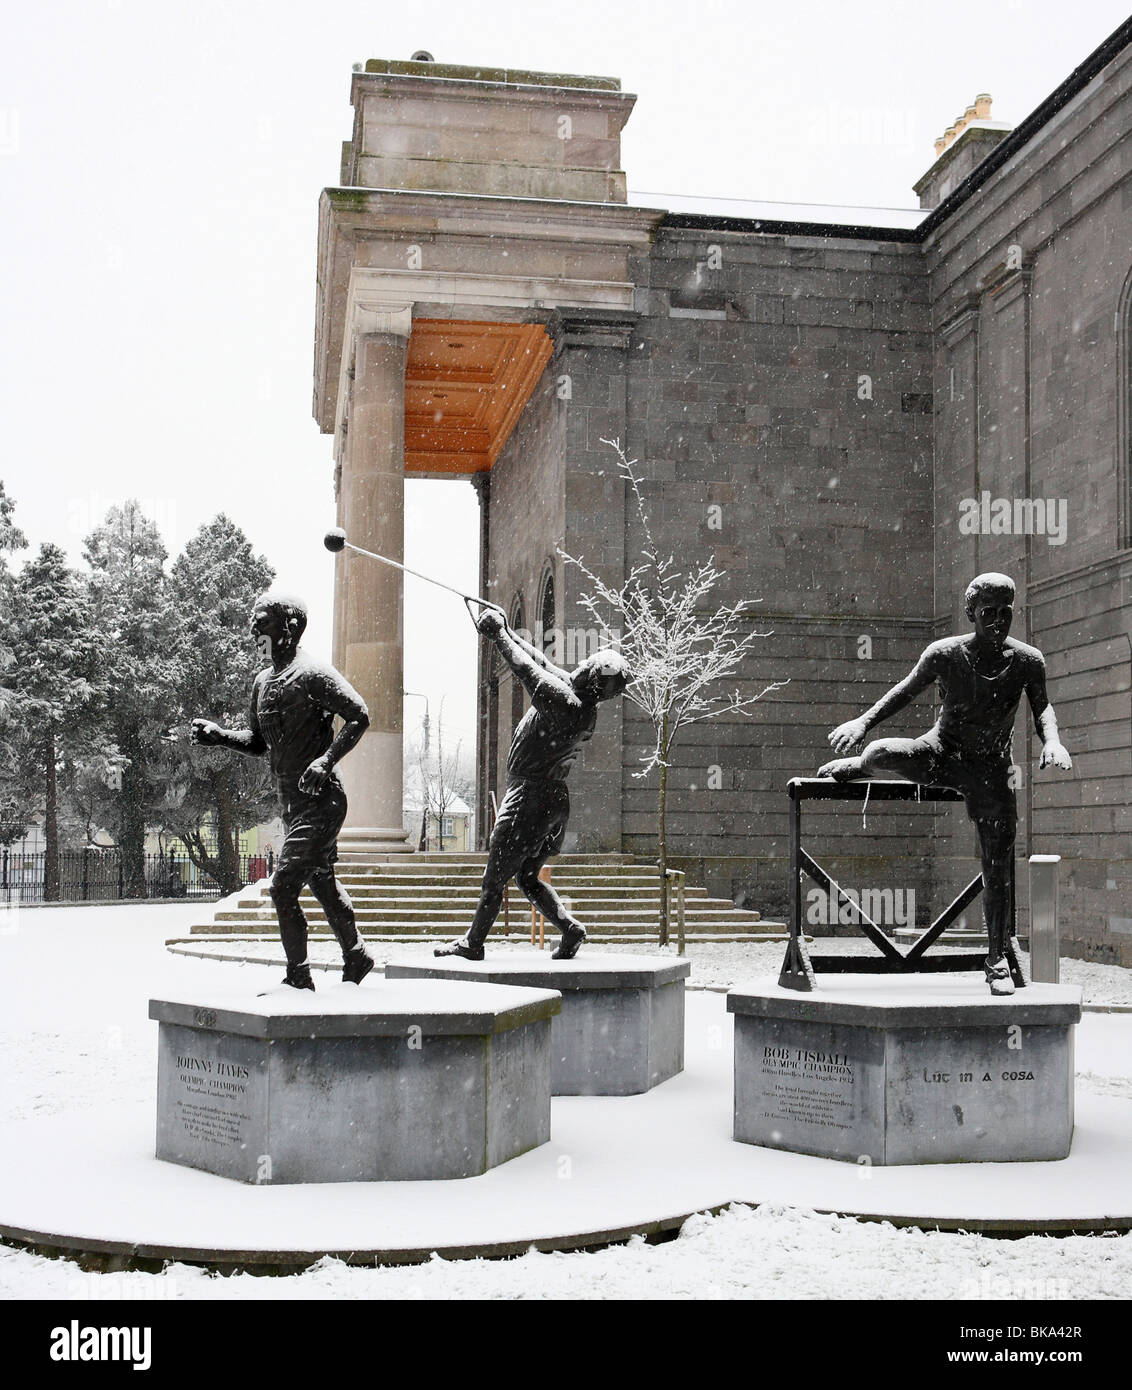 Monument to Nenagh's three Olympic Champions on a snowy Winter morning. - Stock Image